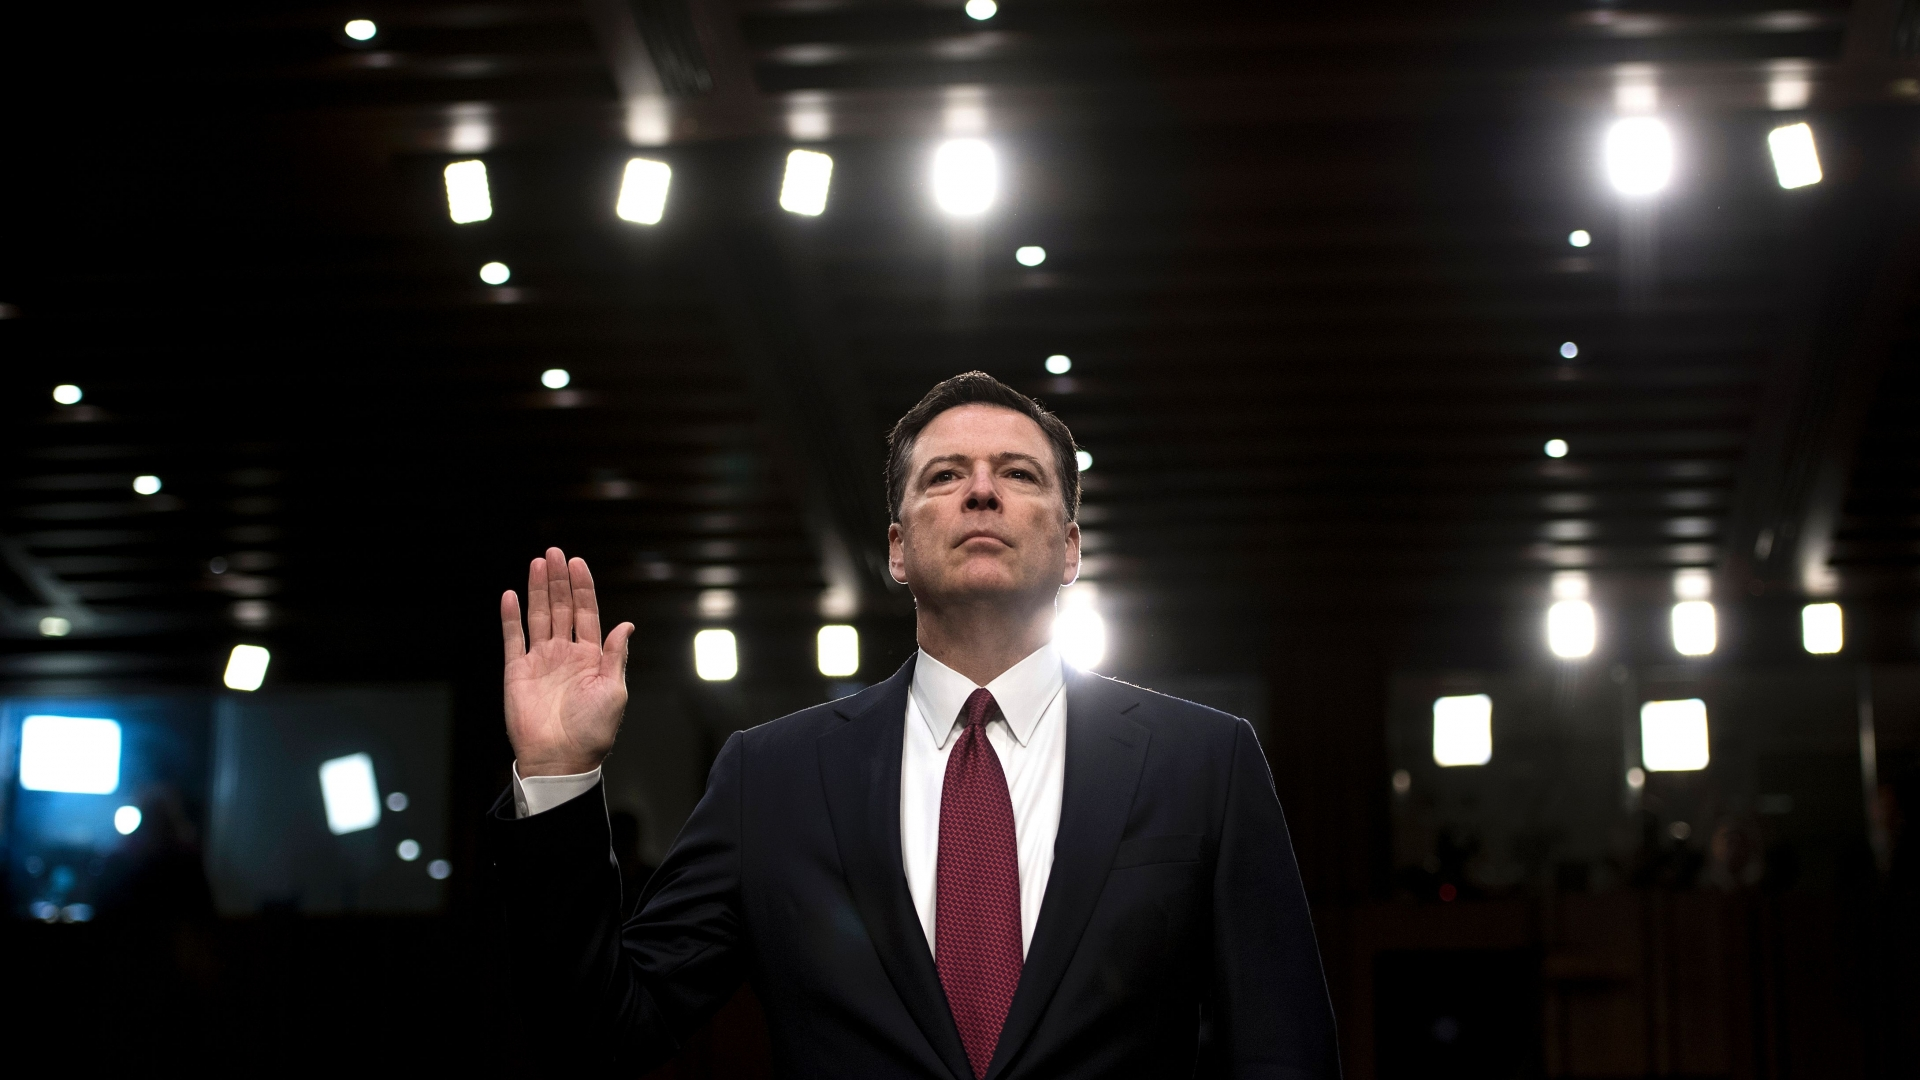 Fired FBI director James Comey being sworn into a crucial Senate hearing, repeating explosive allegations that President Donald Trump badgered him over the highly sensitive investigation Russia's meddling in the 2016 election. (Credit: Brendan Smialowski/AFP/Getty Images)